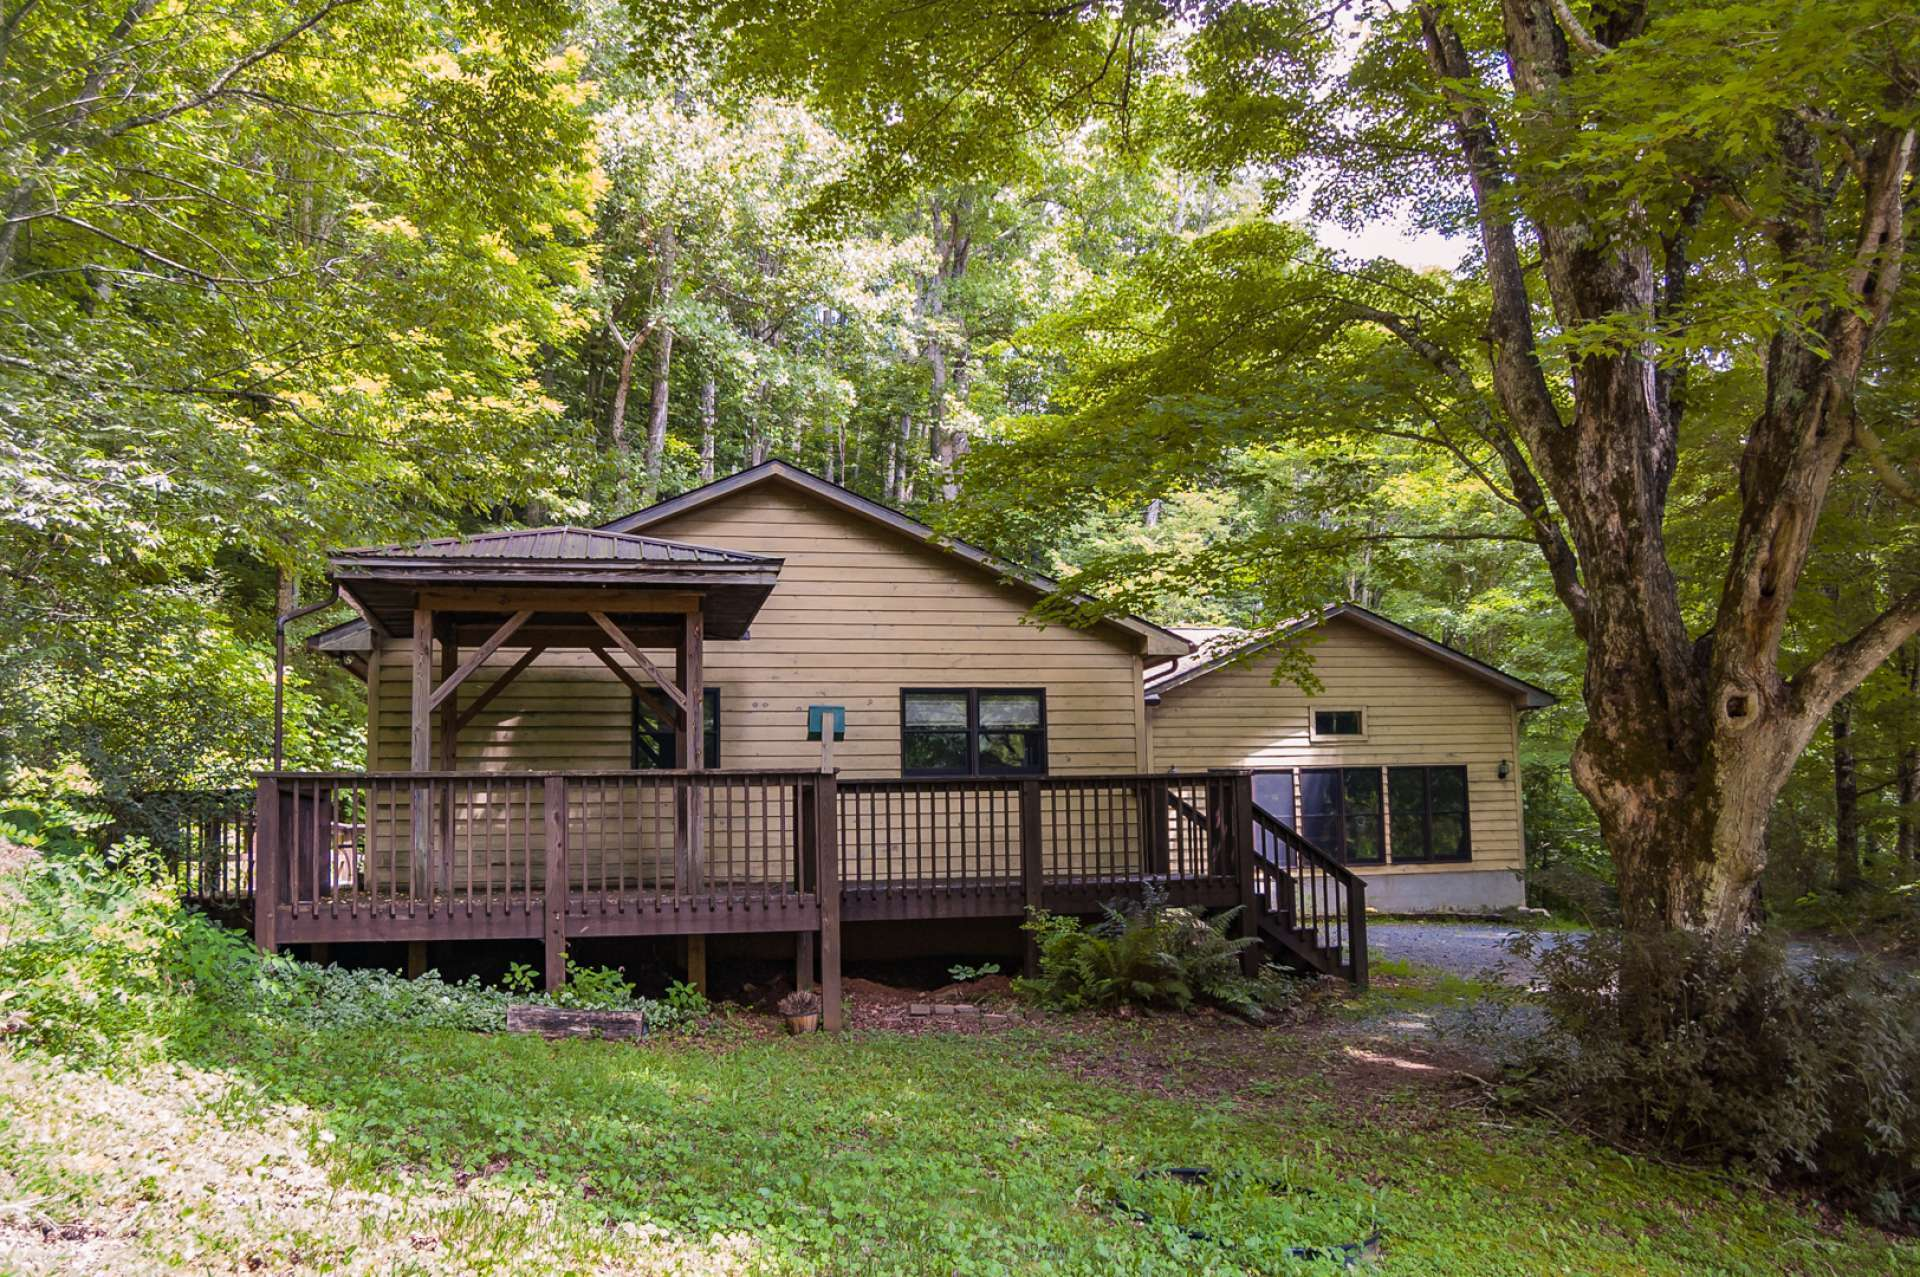 The deck is a great place to spend time enjoying mountain living.   Call today for additional information on our listing L188, the 3-bedroom, 2-bath home on 2+ acres in Southern Ashe County, NC Mountain high country.   L188